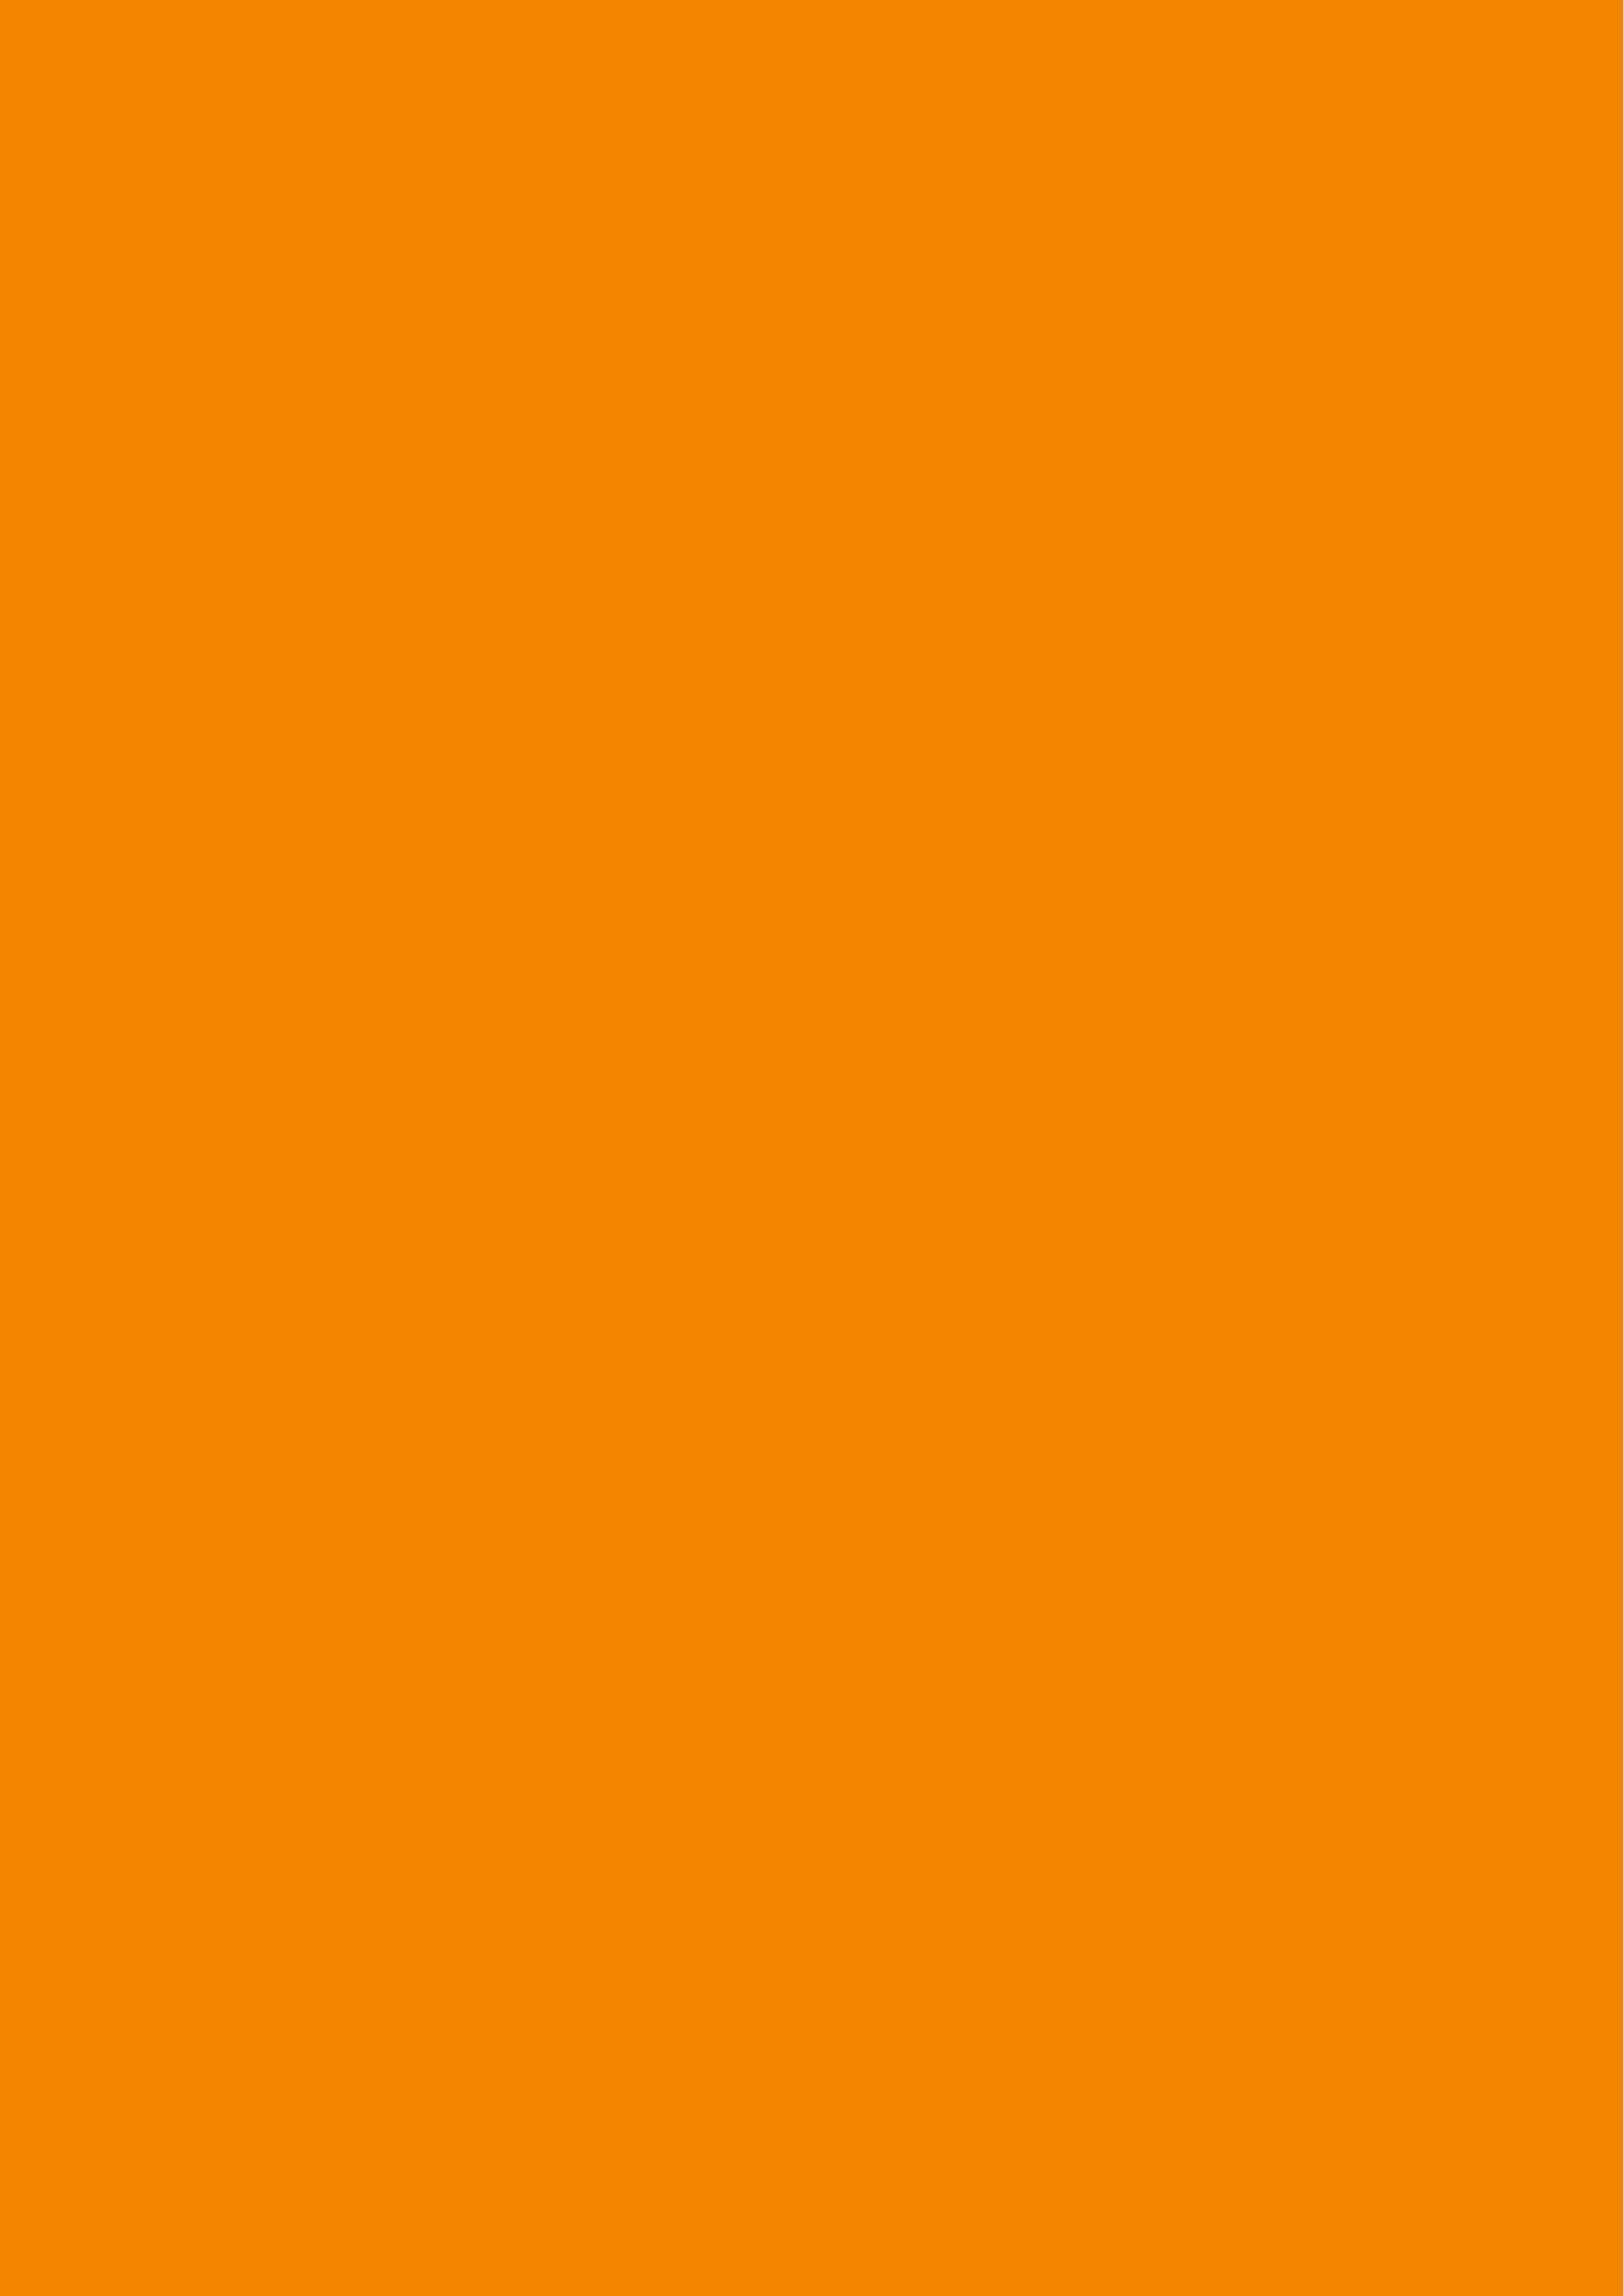 2480x3508 Tangerine Solid Color Background